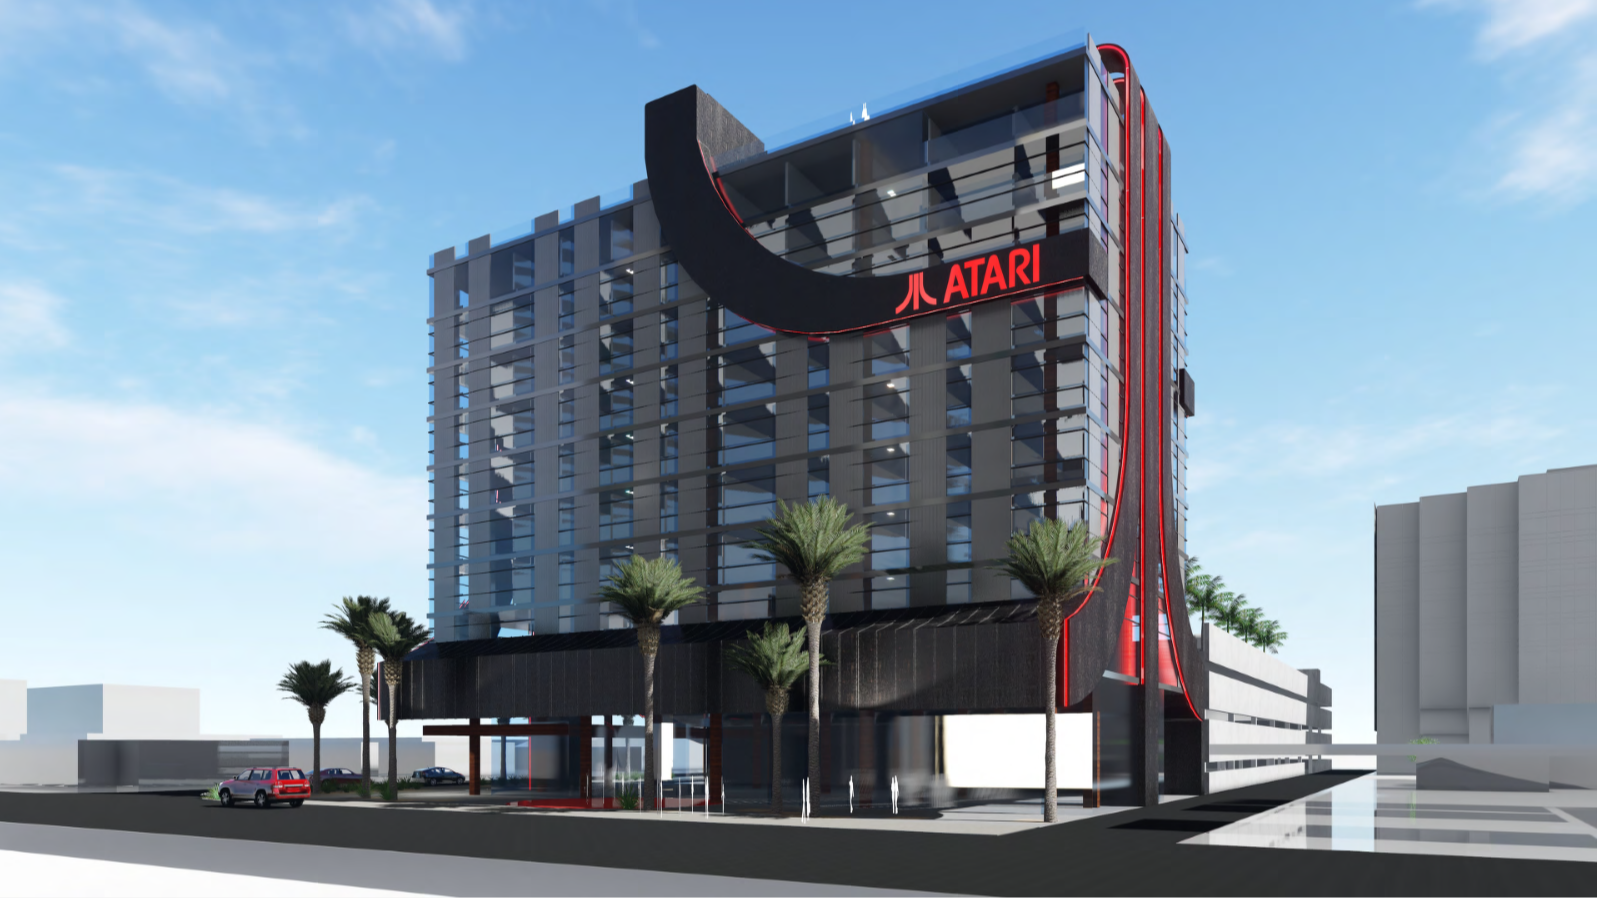 Atari Hotel Video Game Company Shares Plans For Las Vegas Resort